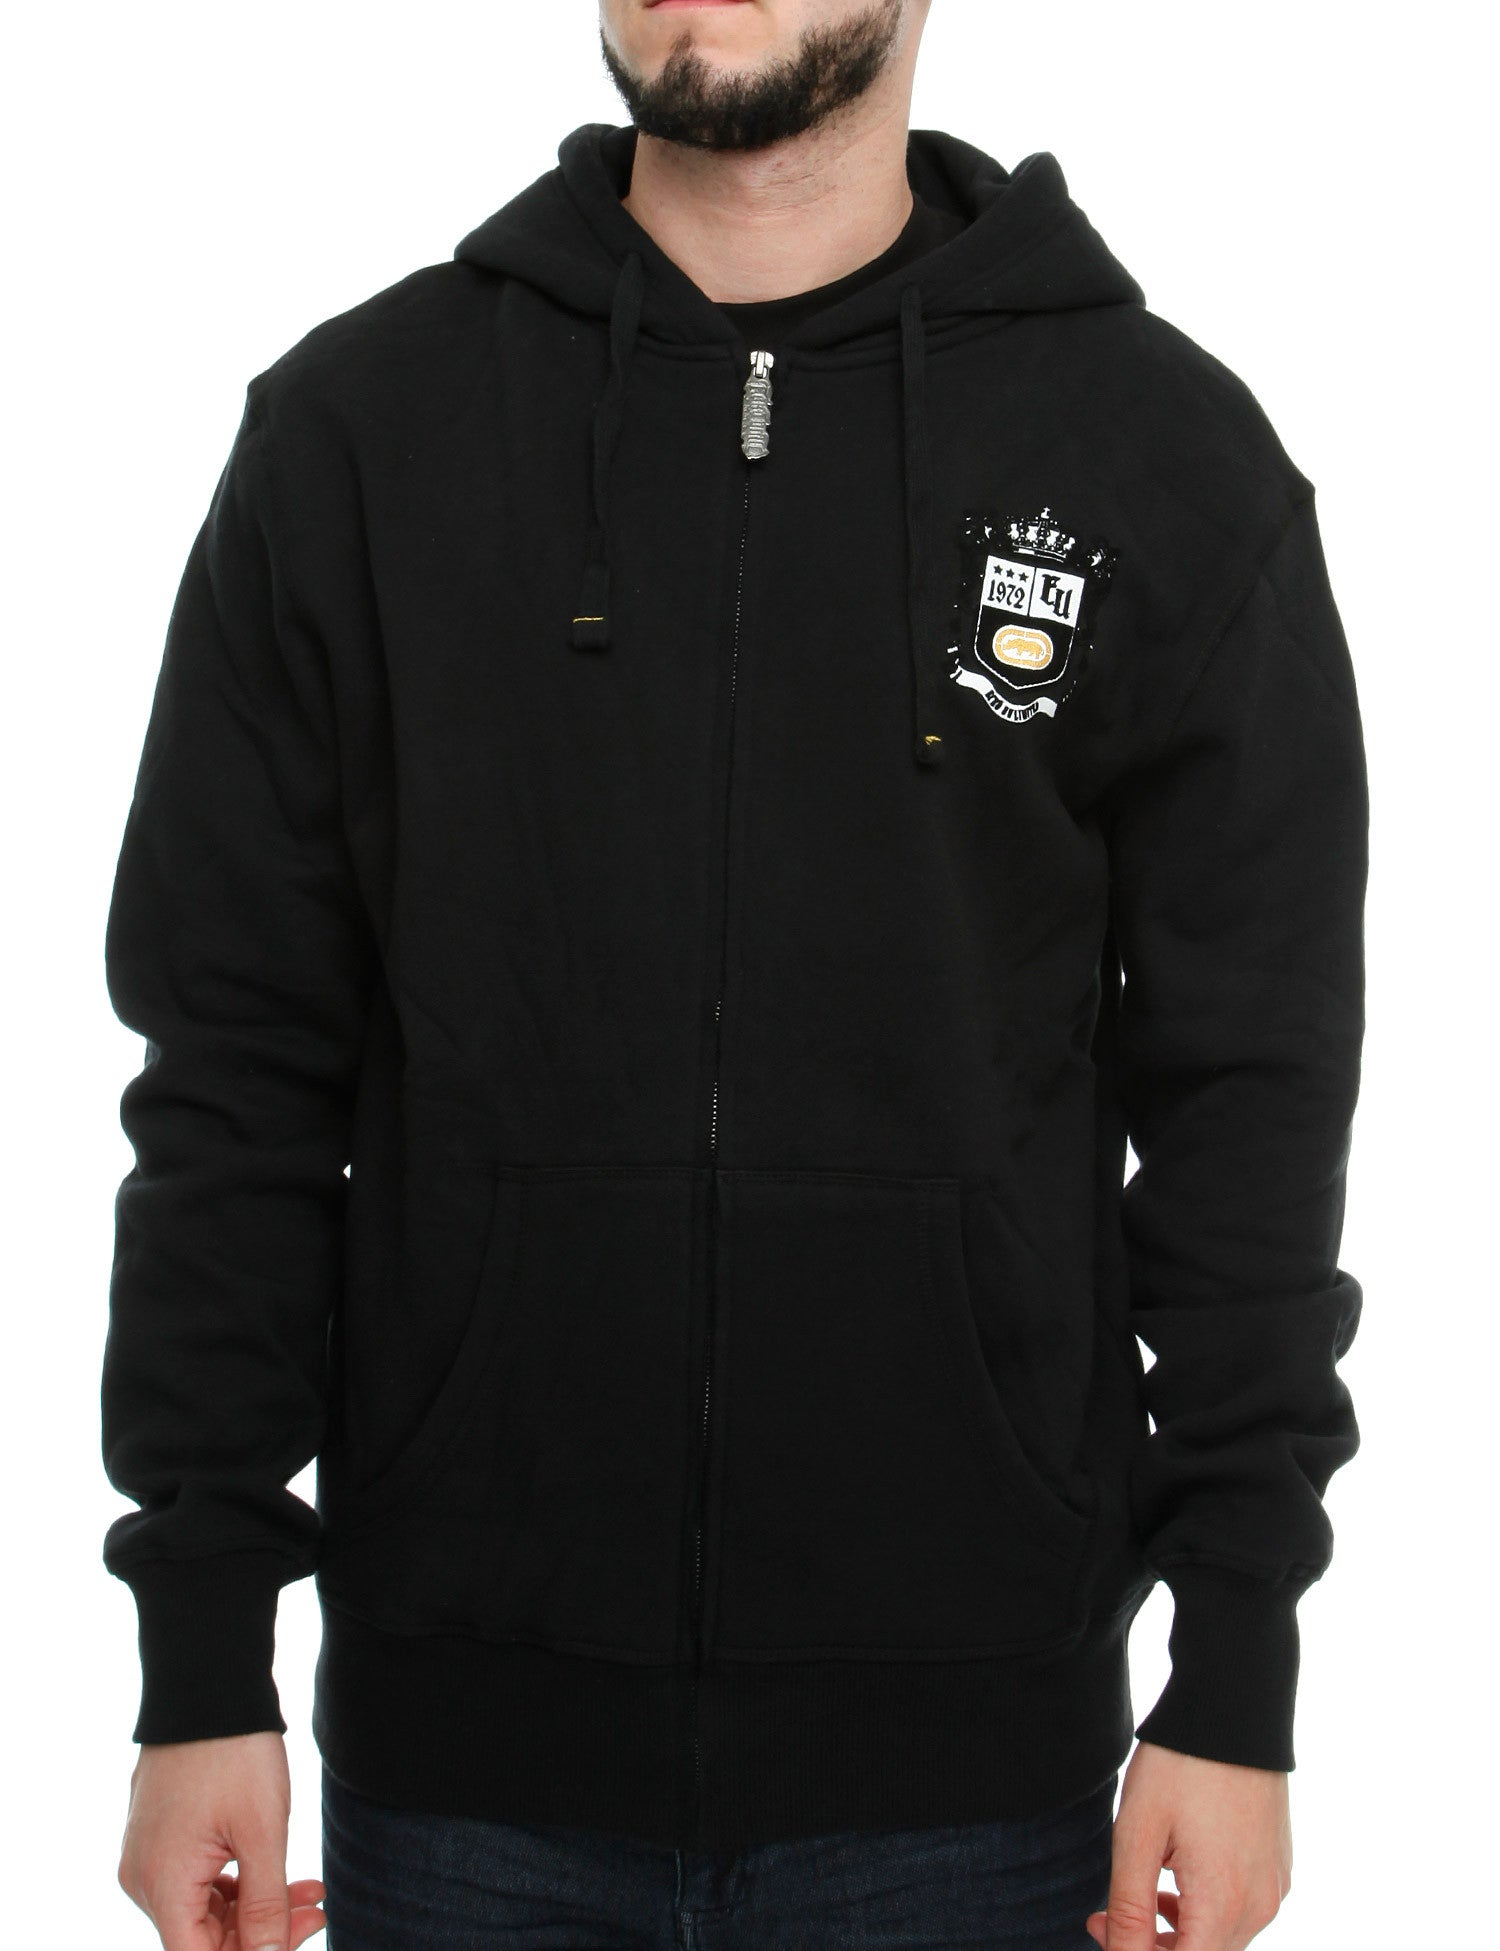 Image of Ecko Laguna Zip Hoody E7N03561 Black